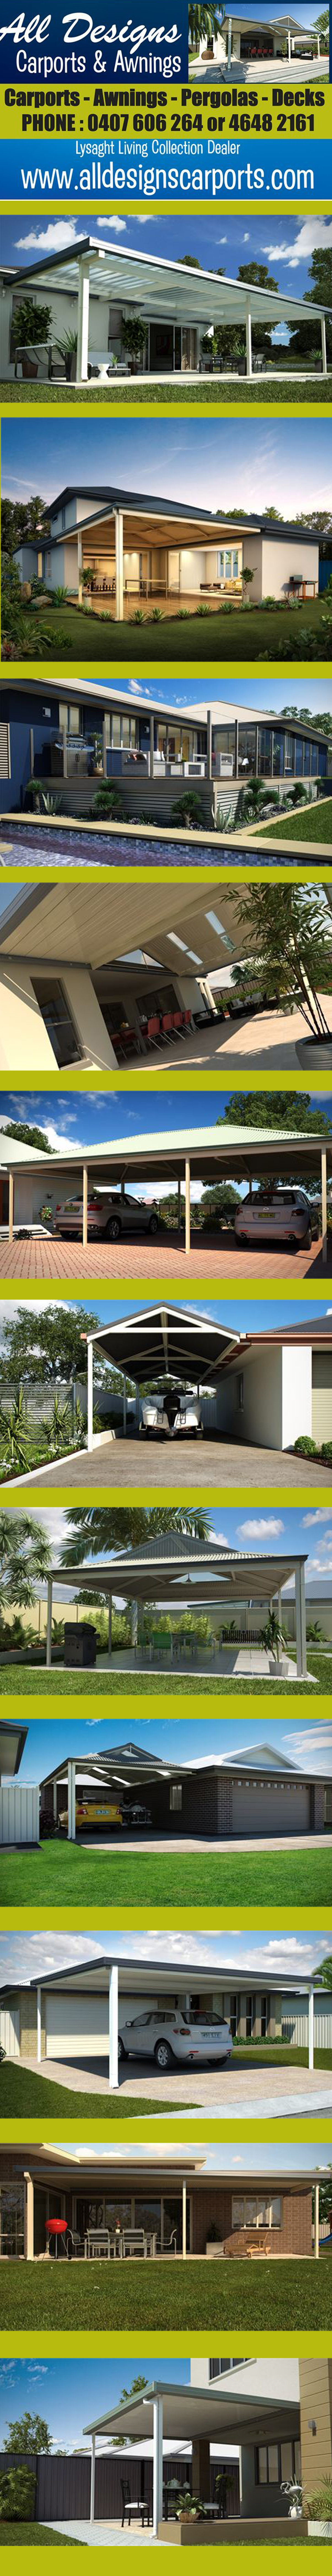 All Designs Carports Awnings